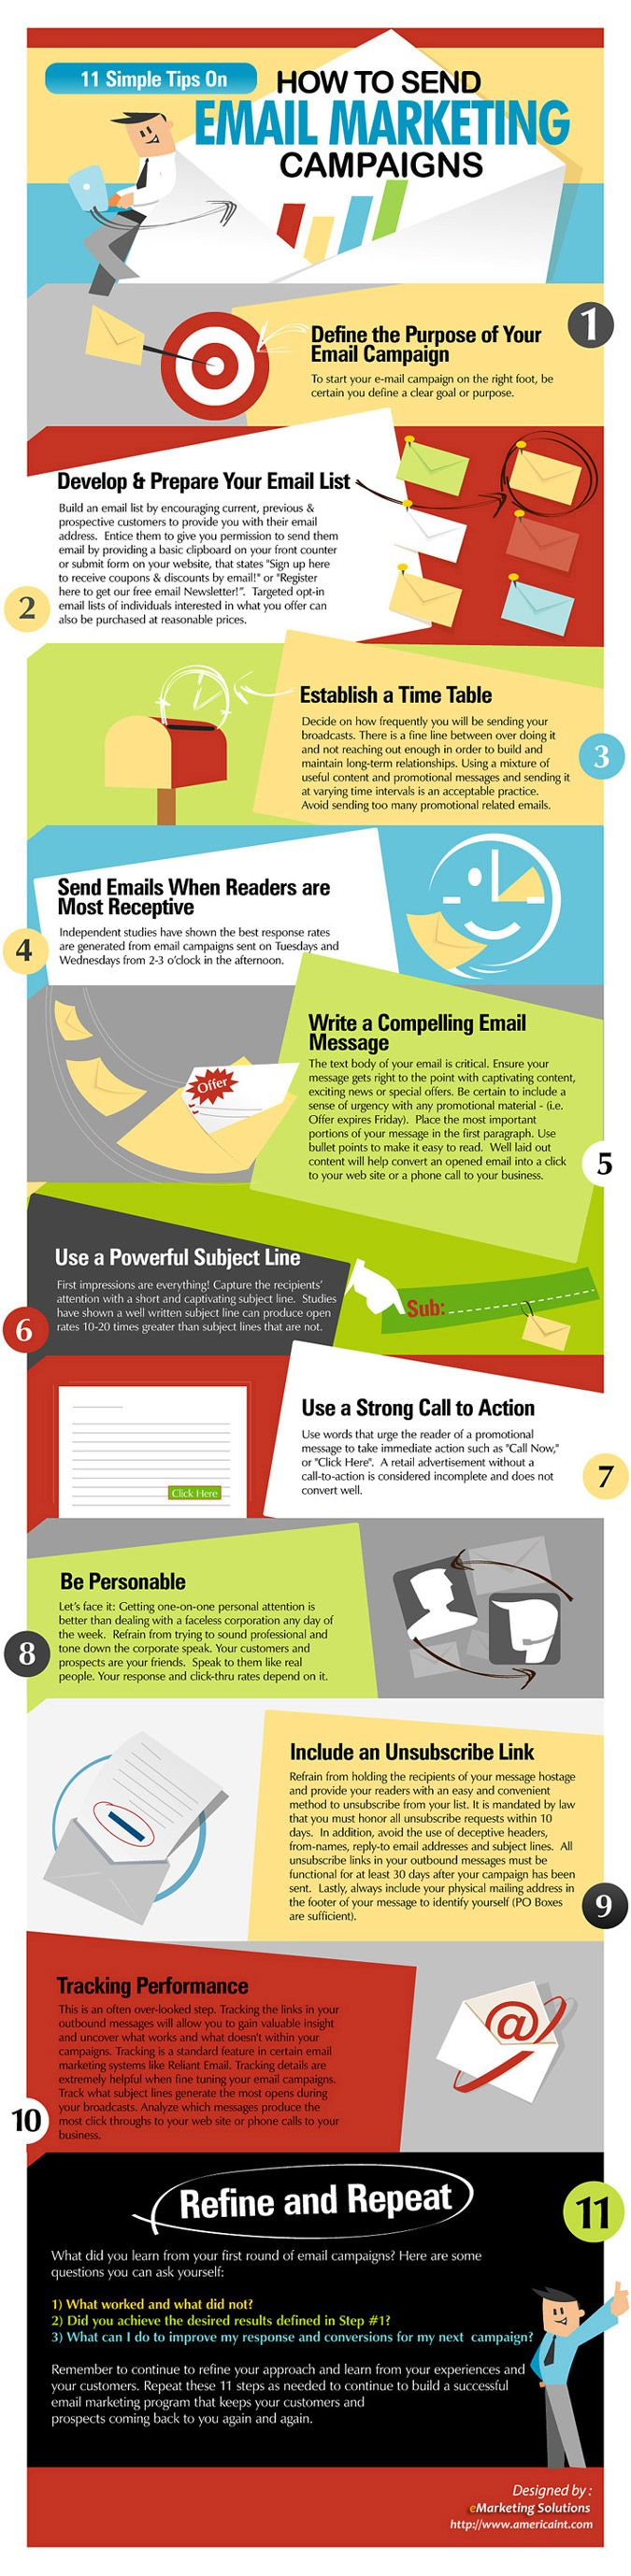 Struggling with Email Effectiveness? Try these11 Email Marketing Tips that Rock